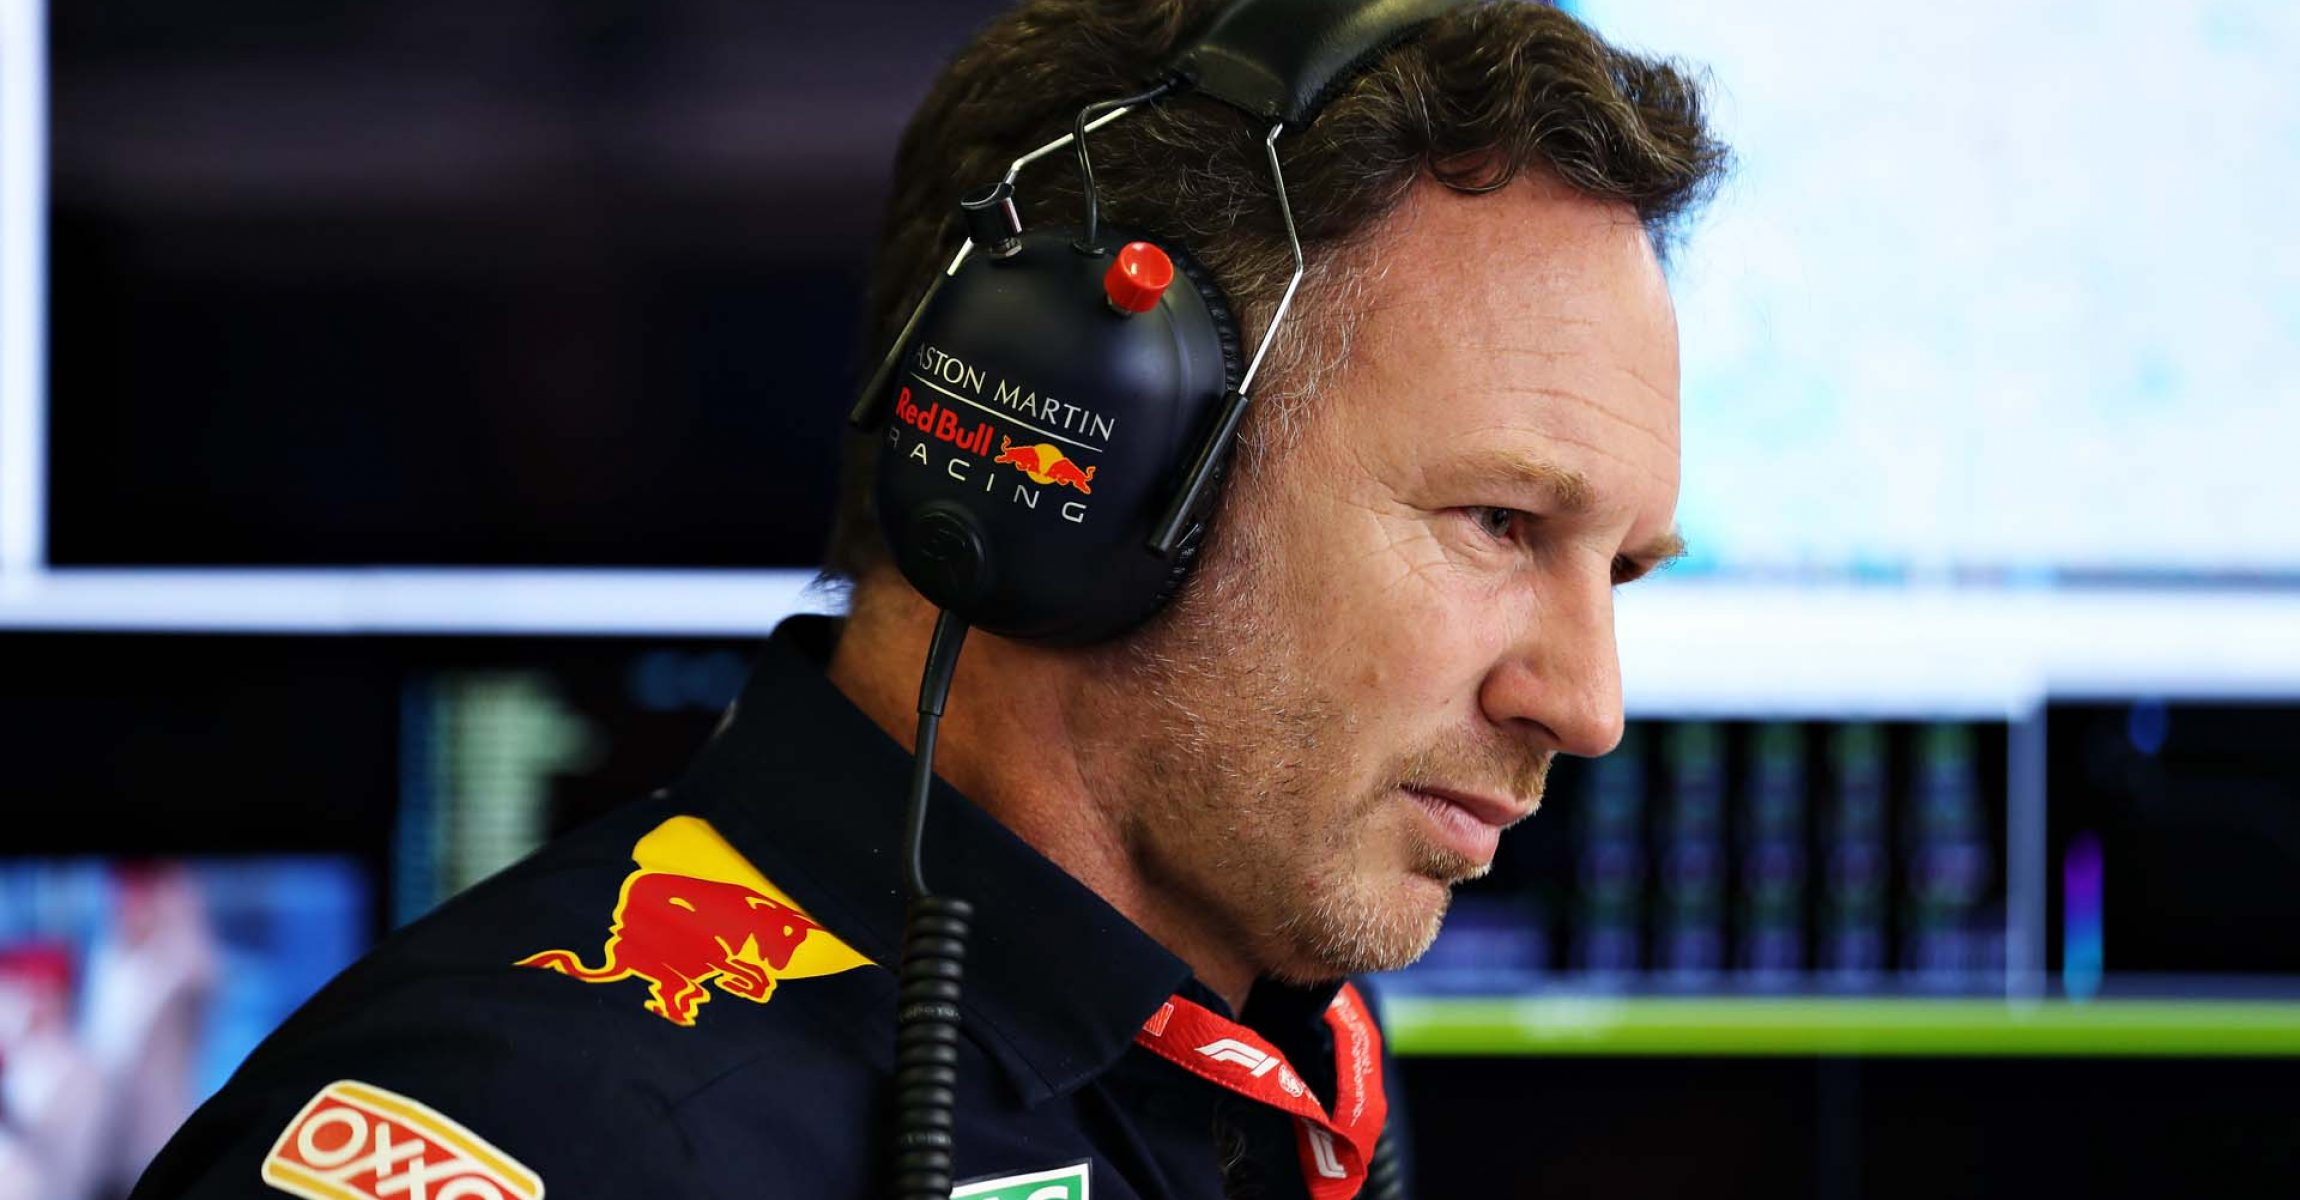 MEXICO CITY, MEXICO - OCTOBER 27: Red Bull Racing Team Principal Christian Horner looks on in the garage before the F1 Grand Prix of Mexico at Autodromo Hermanos Rodriguez on October 27, 2019 in Mexico City, Mexico. (Photo by Mark Thompson/Getty Images) // Getty Images / Red Bull Content Pool // AP-21ZQ5VHUN2111 // Usage for editorial use only //